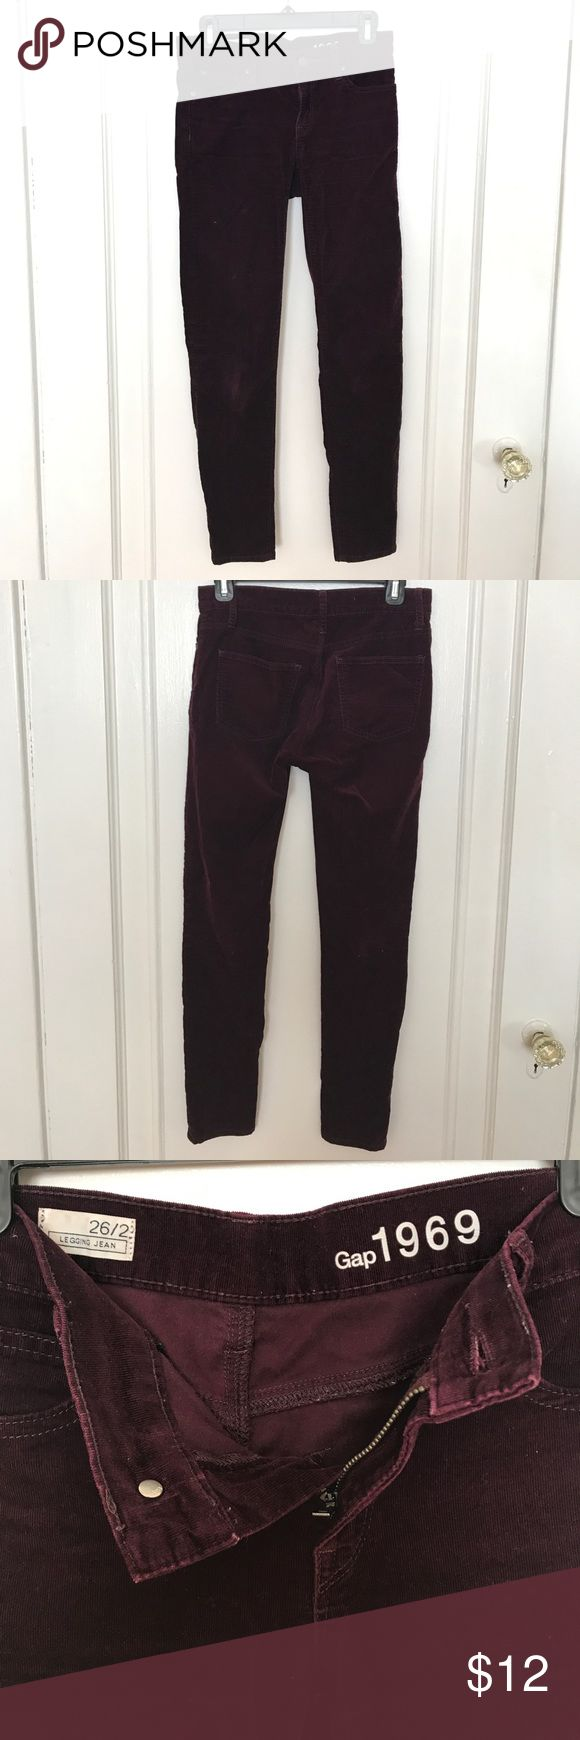 Maroon Corduroy Legging Jean Beautiful maroon/ plum Corduroy Legging Jean by Gap. Size 26/ 2. Skinny fit. In good condition. These are the most comfortable jeans I've ever owned! Have same pants in emerald color available in different listing. No trades please but open to offers. GAP Jeans Skinny